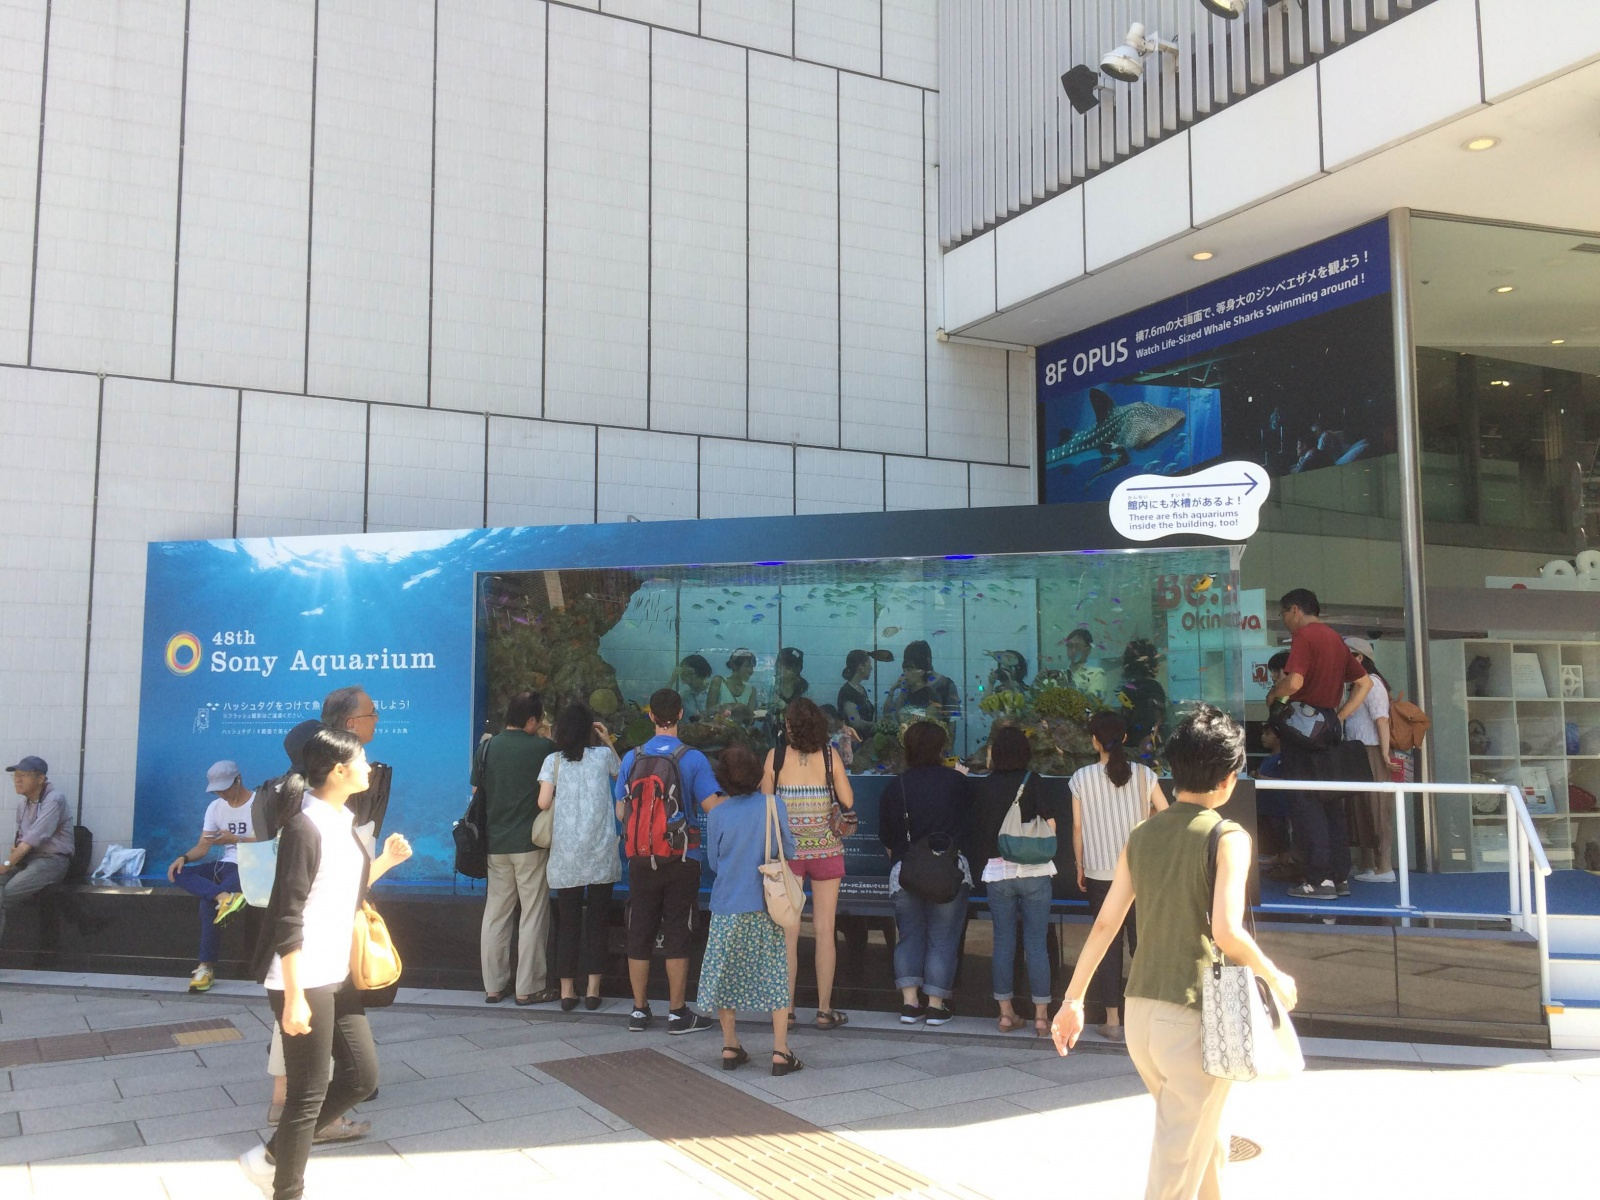 48th Sony Aquarium(1)